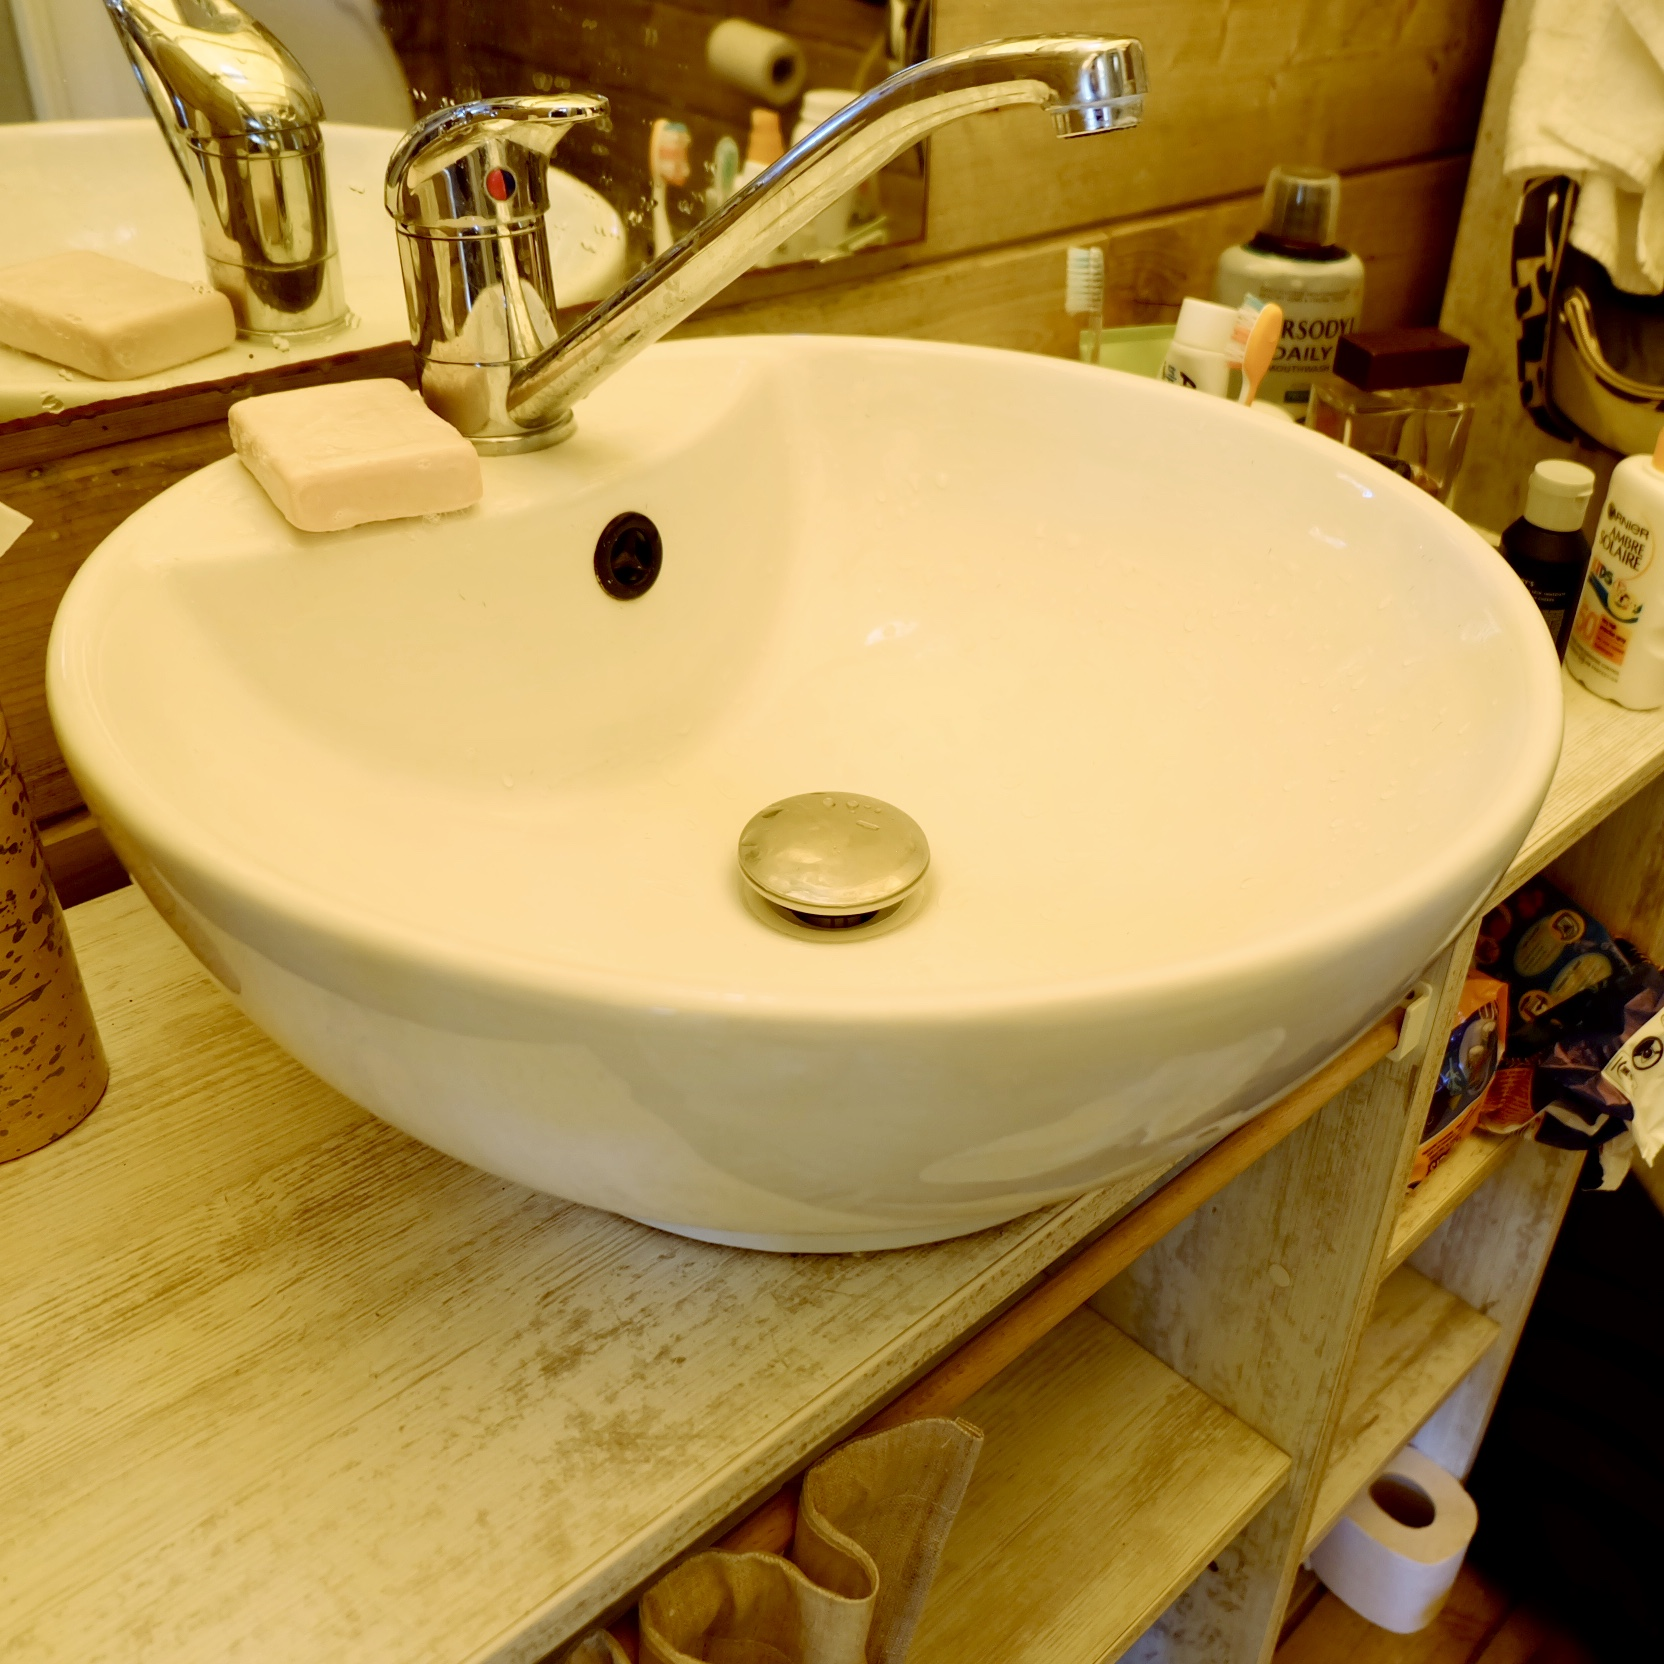 Oversized glamping sink ergonomics